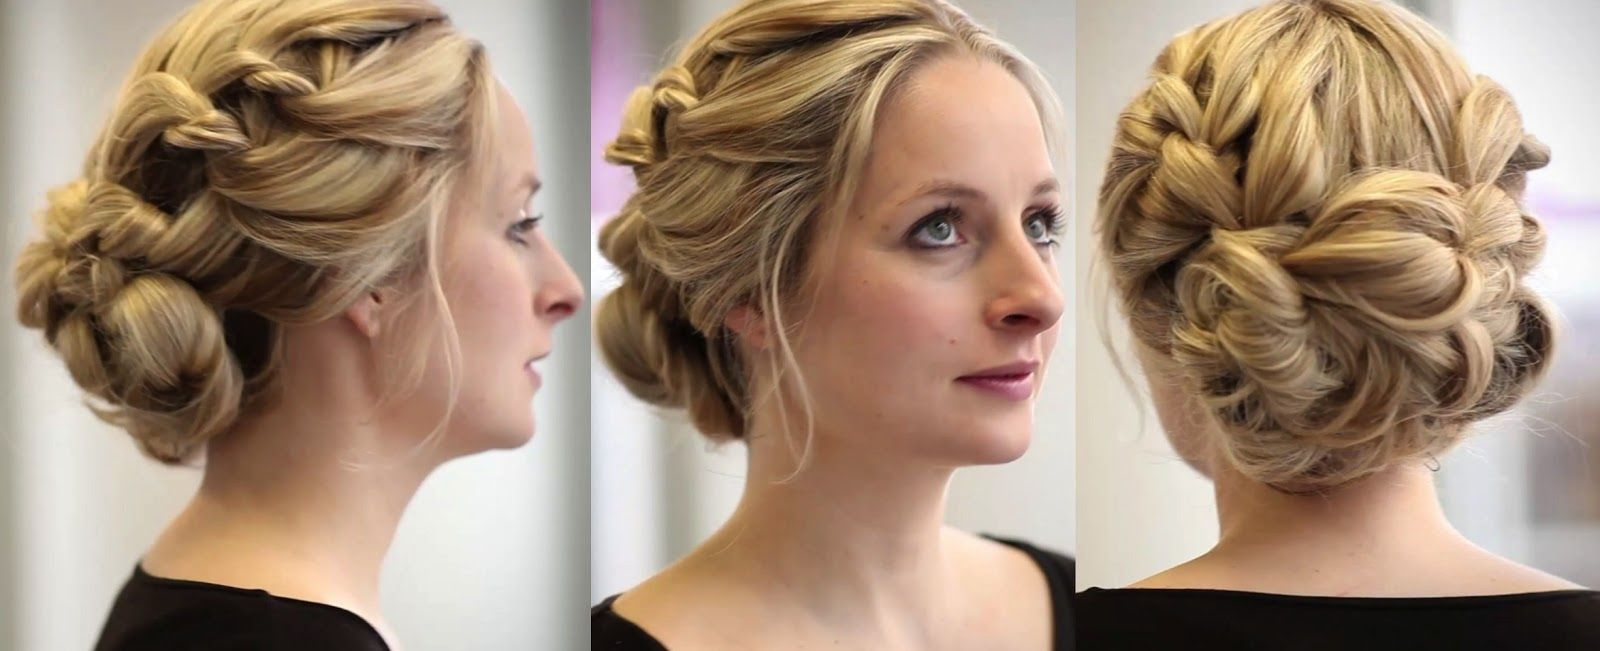 Hair Styles For Short Hair Brides: Wedding Hairstyles On Pinterest